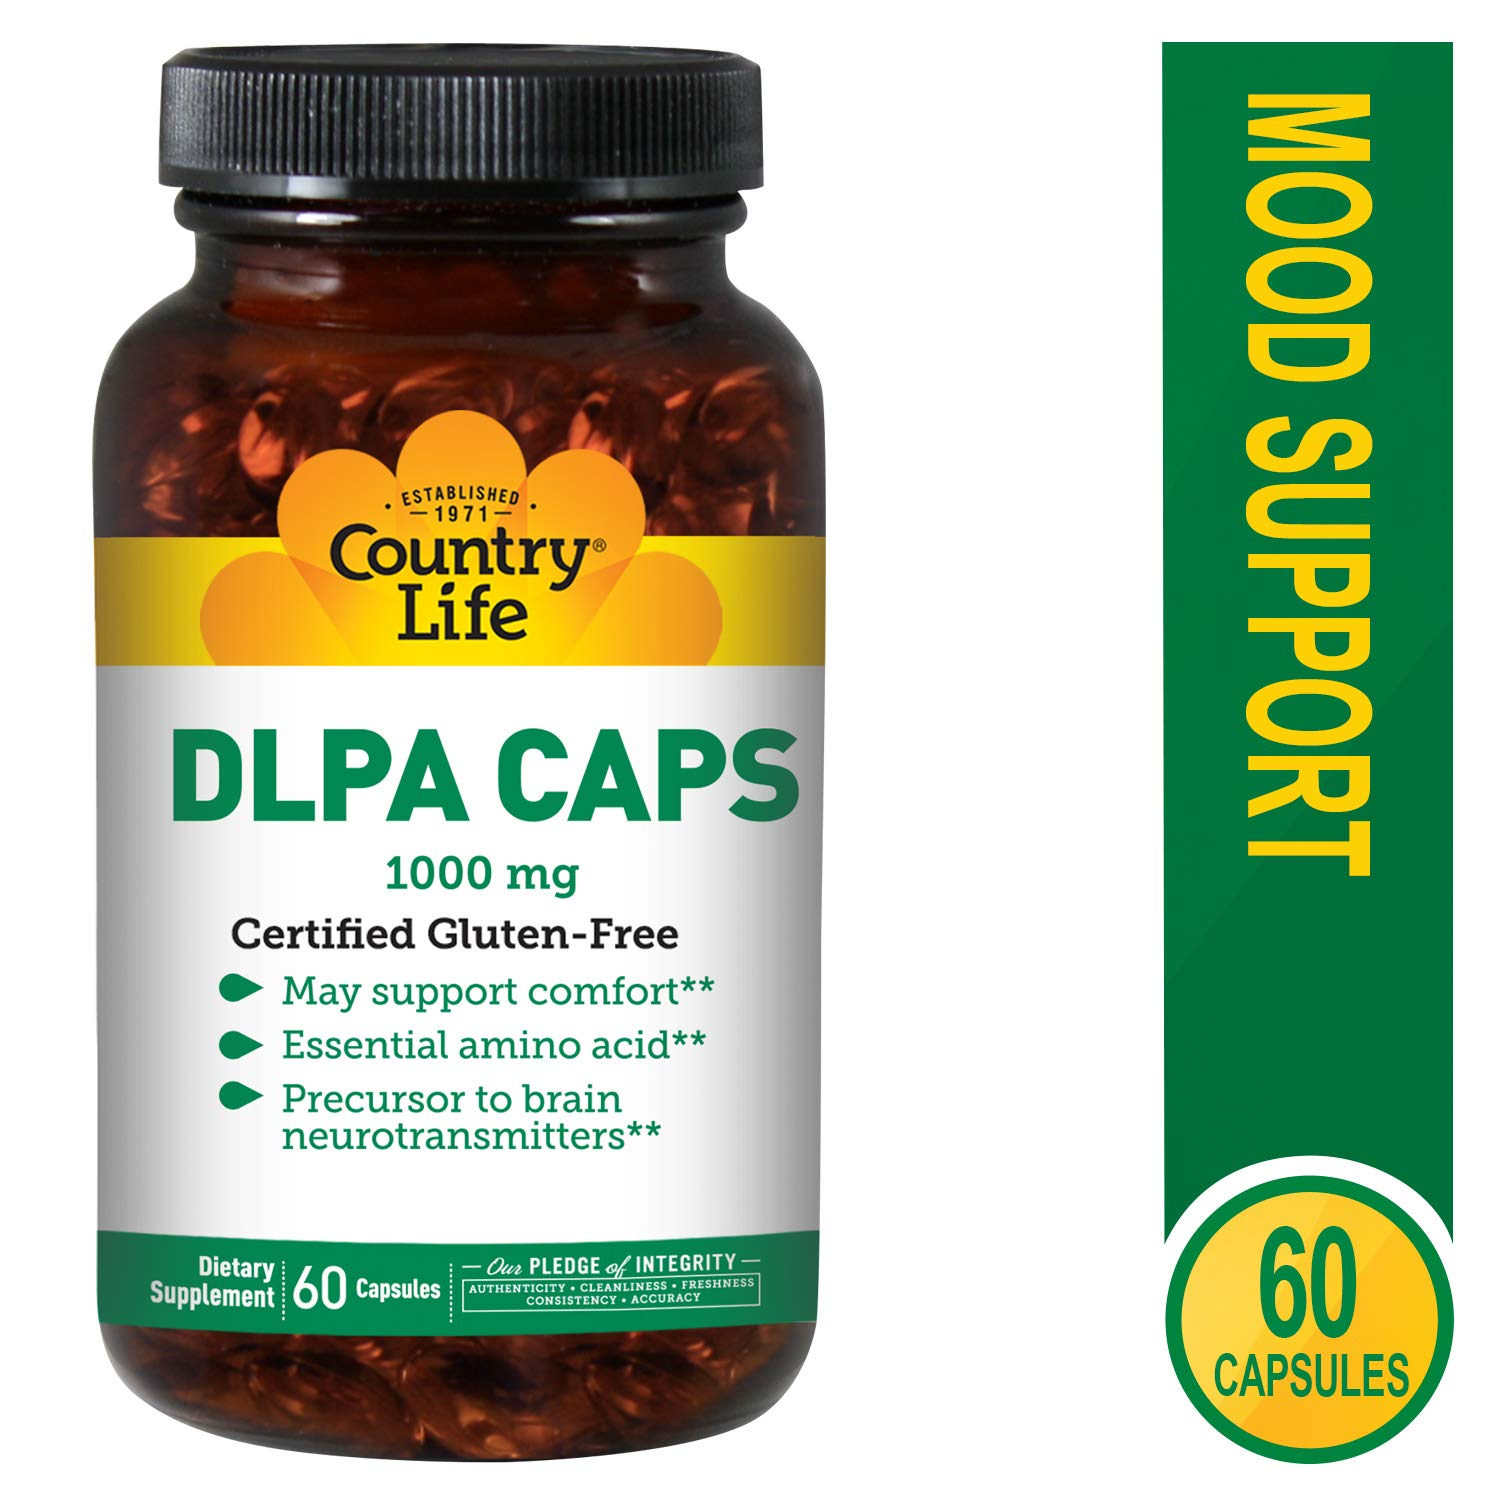 Country Life DLPA CAPS 1000 mg - 60 Capsules - Support Comfort - Amino Acid - Precursor to Brain neurotransmitters by Country Life